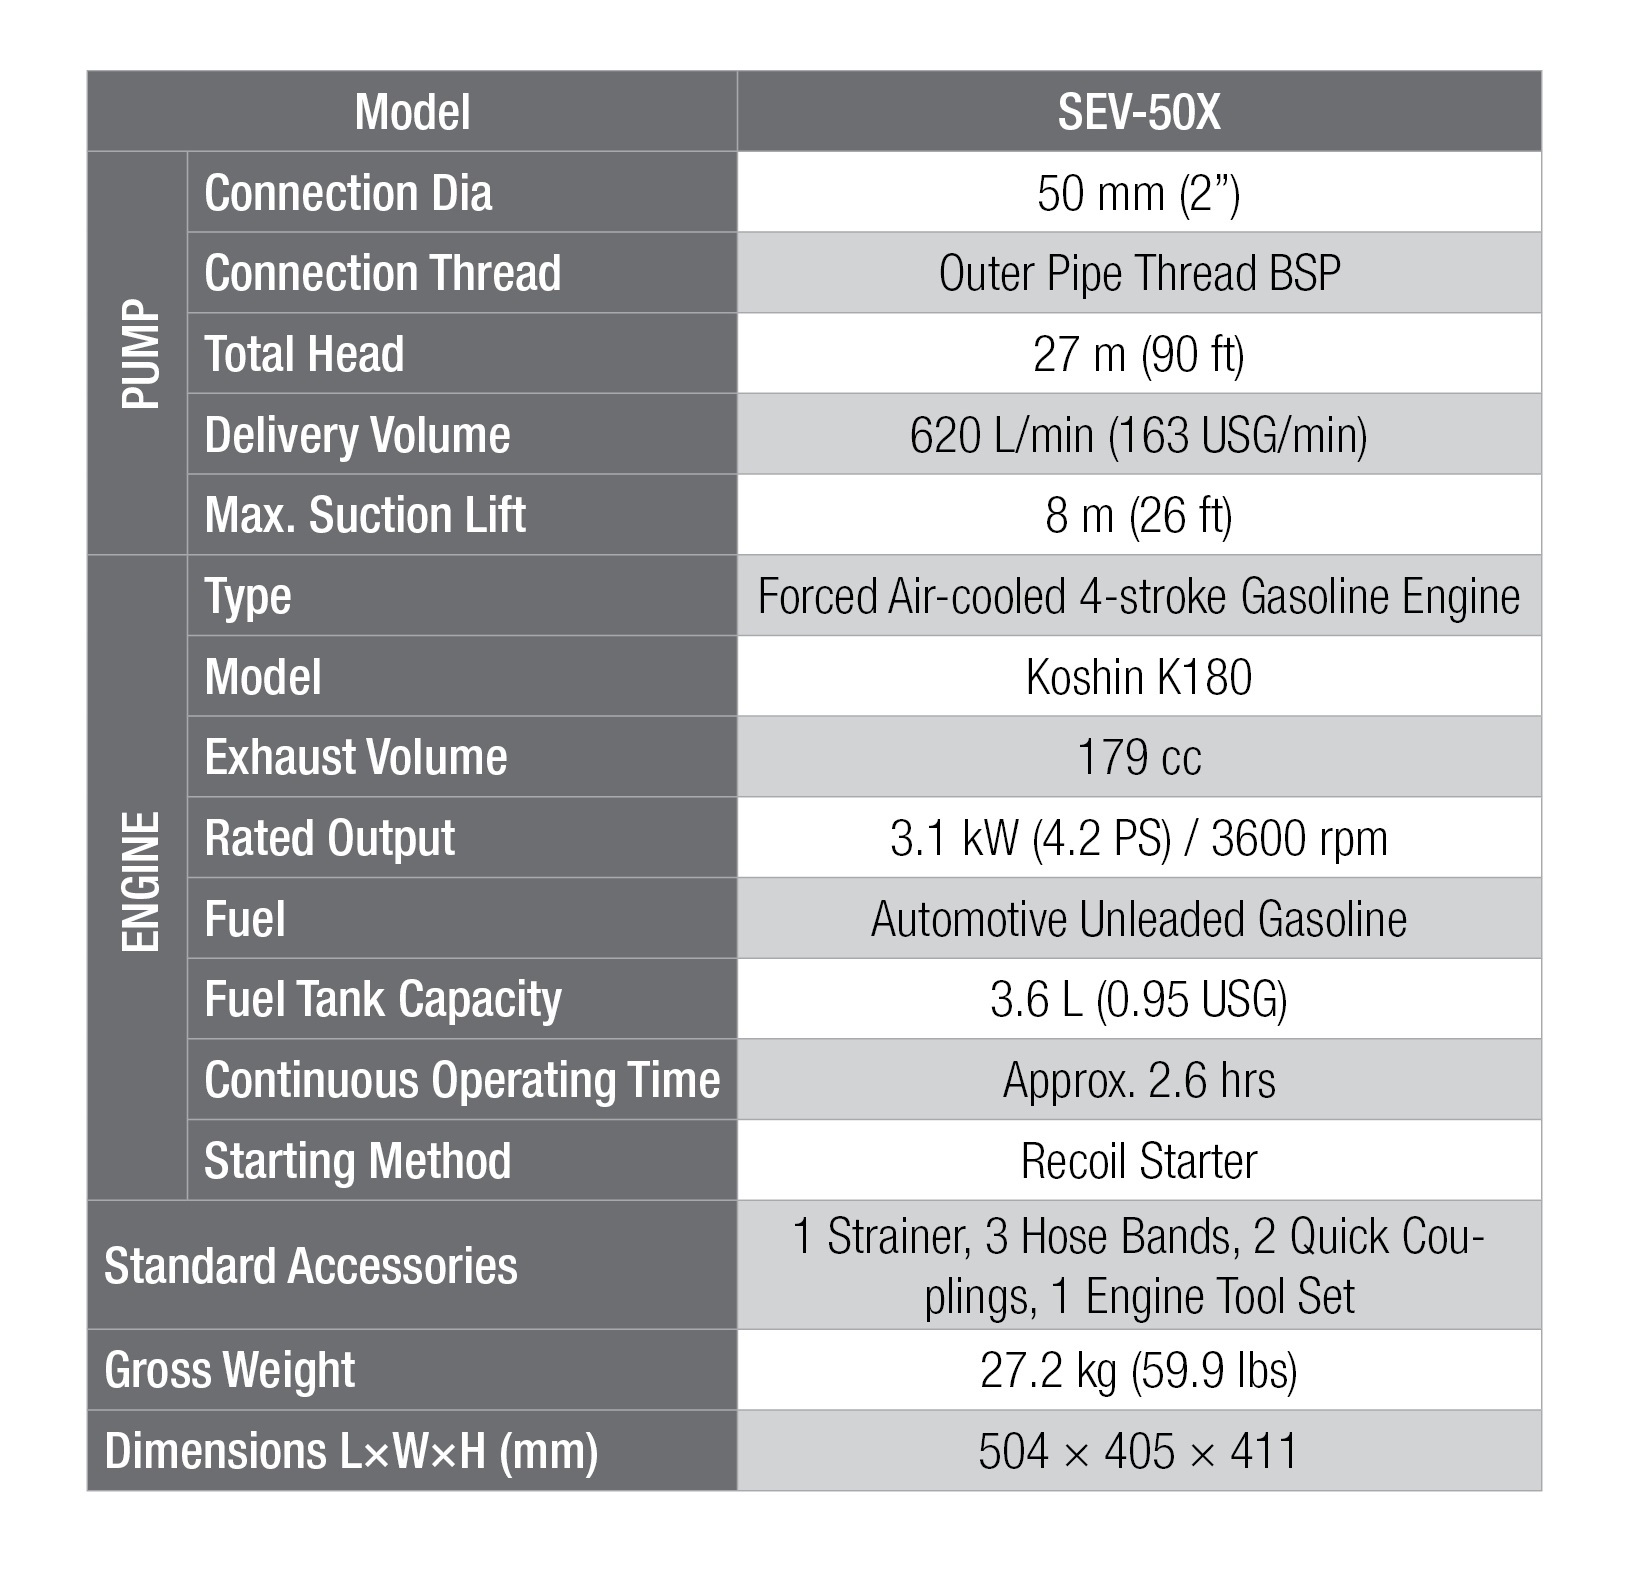 SEV 50 X specifications